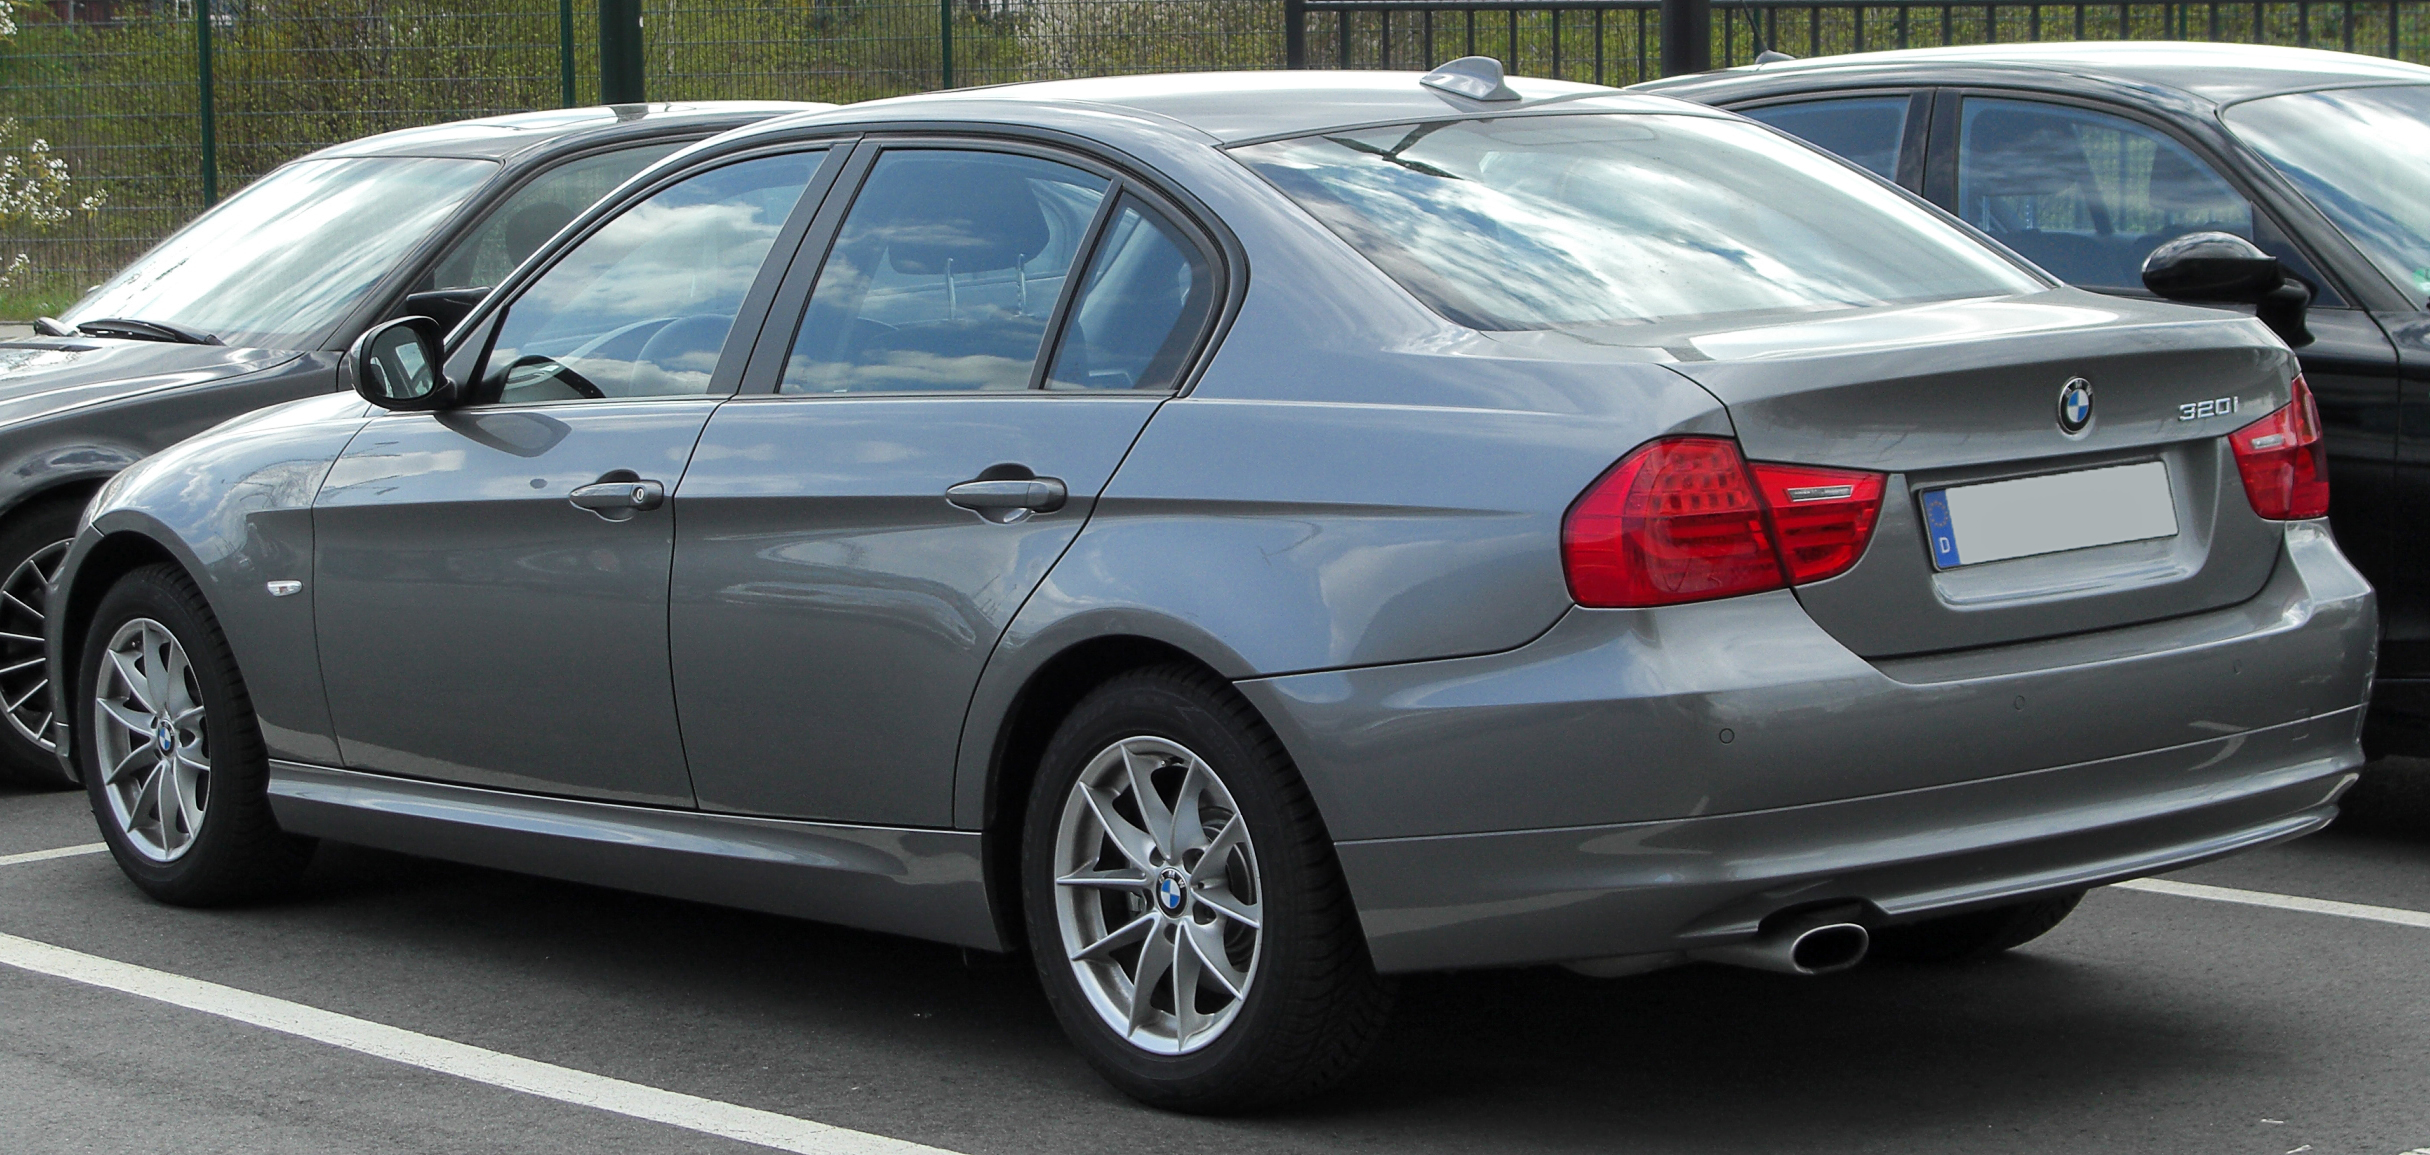 file bmw 320i e90 facelift rear wikipedia. Black Bedroom Furniture Sets. Home Design Ideas